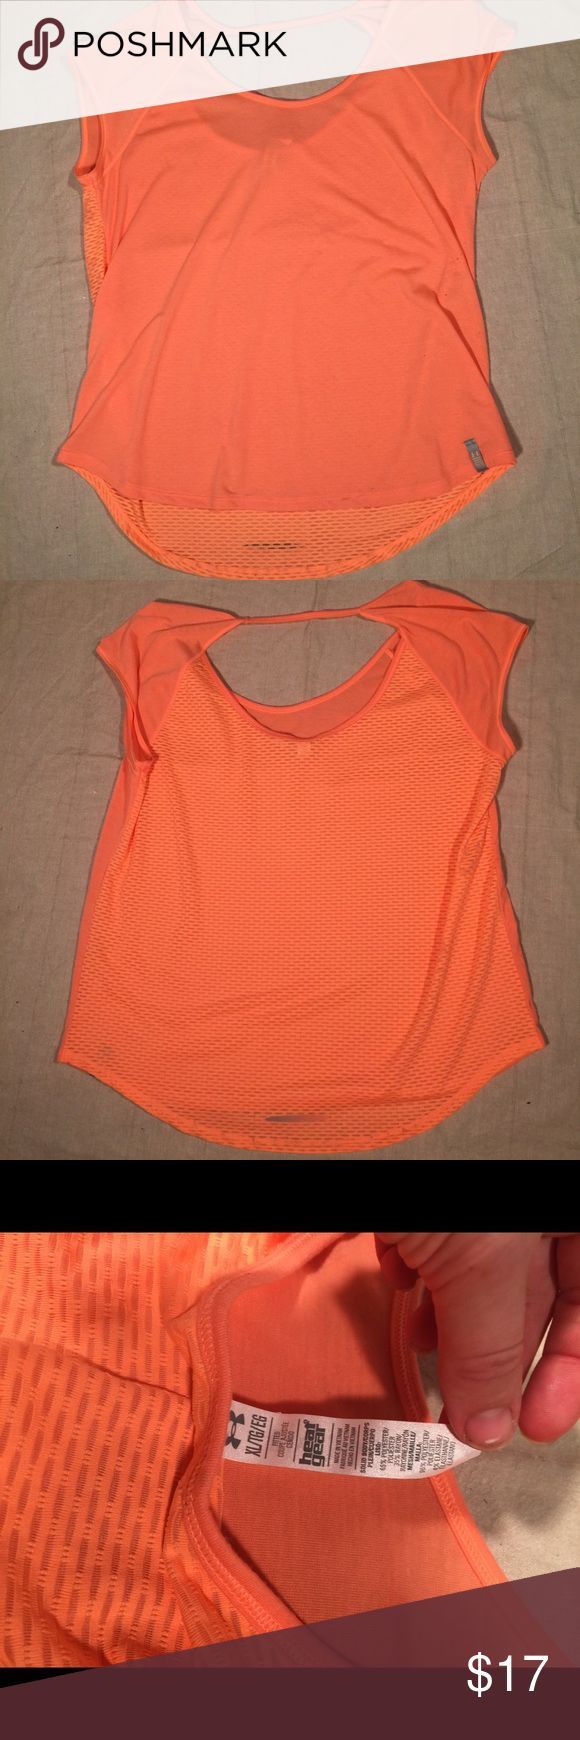 Under Armour Orange Backless Lightweight Top XL Great Under Armour athletic top. Orange with different textures panels on front and sides. Open back with cross strap. Size women's XL Under Armour Tops Tees - Short Sleeve